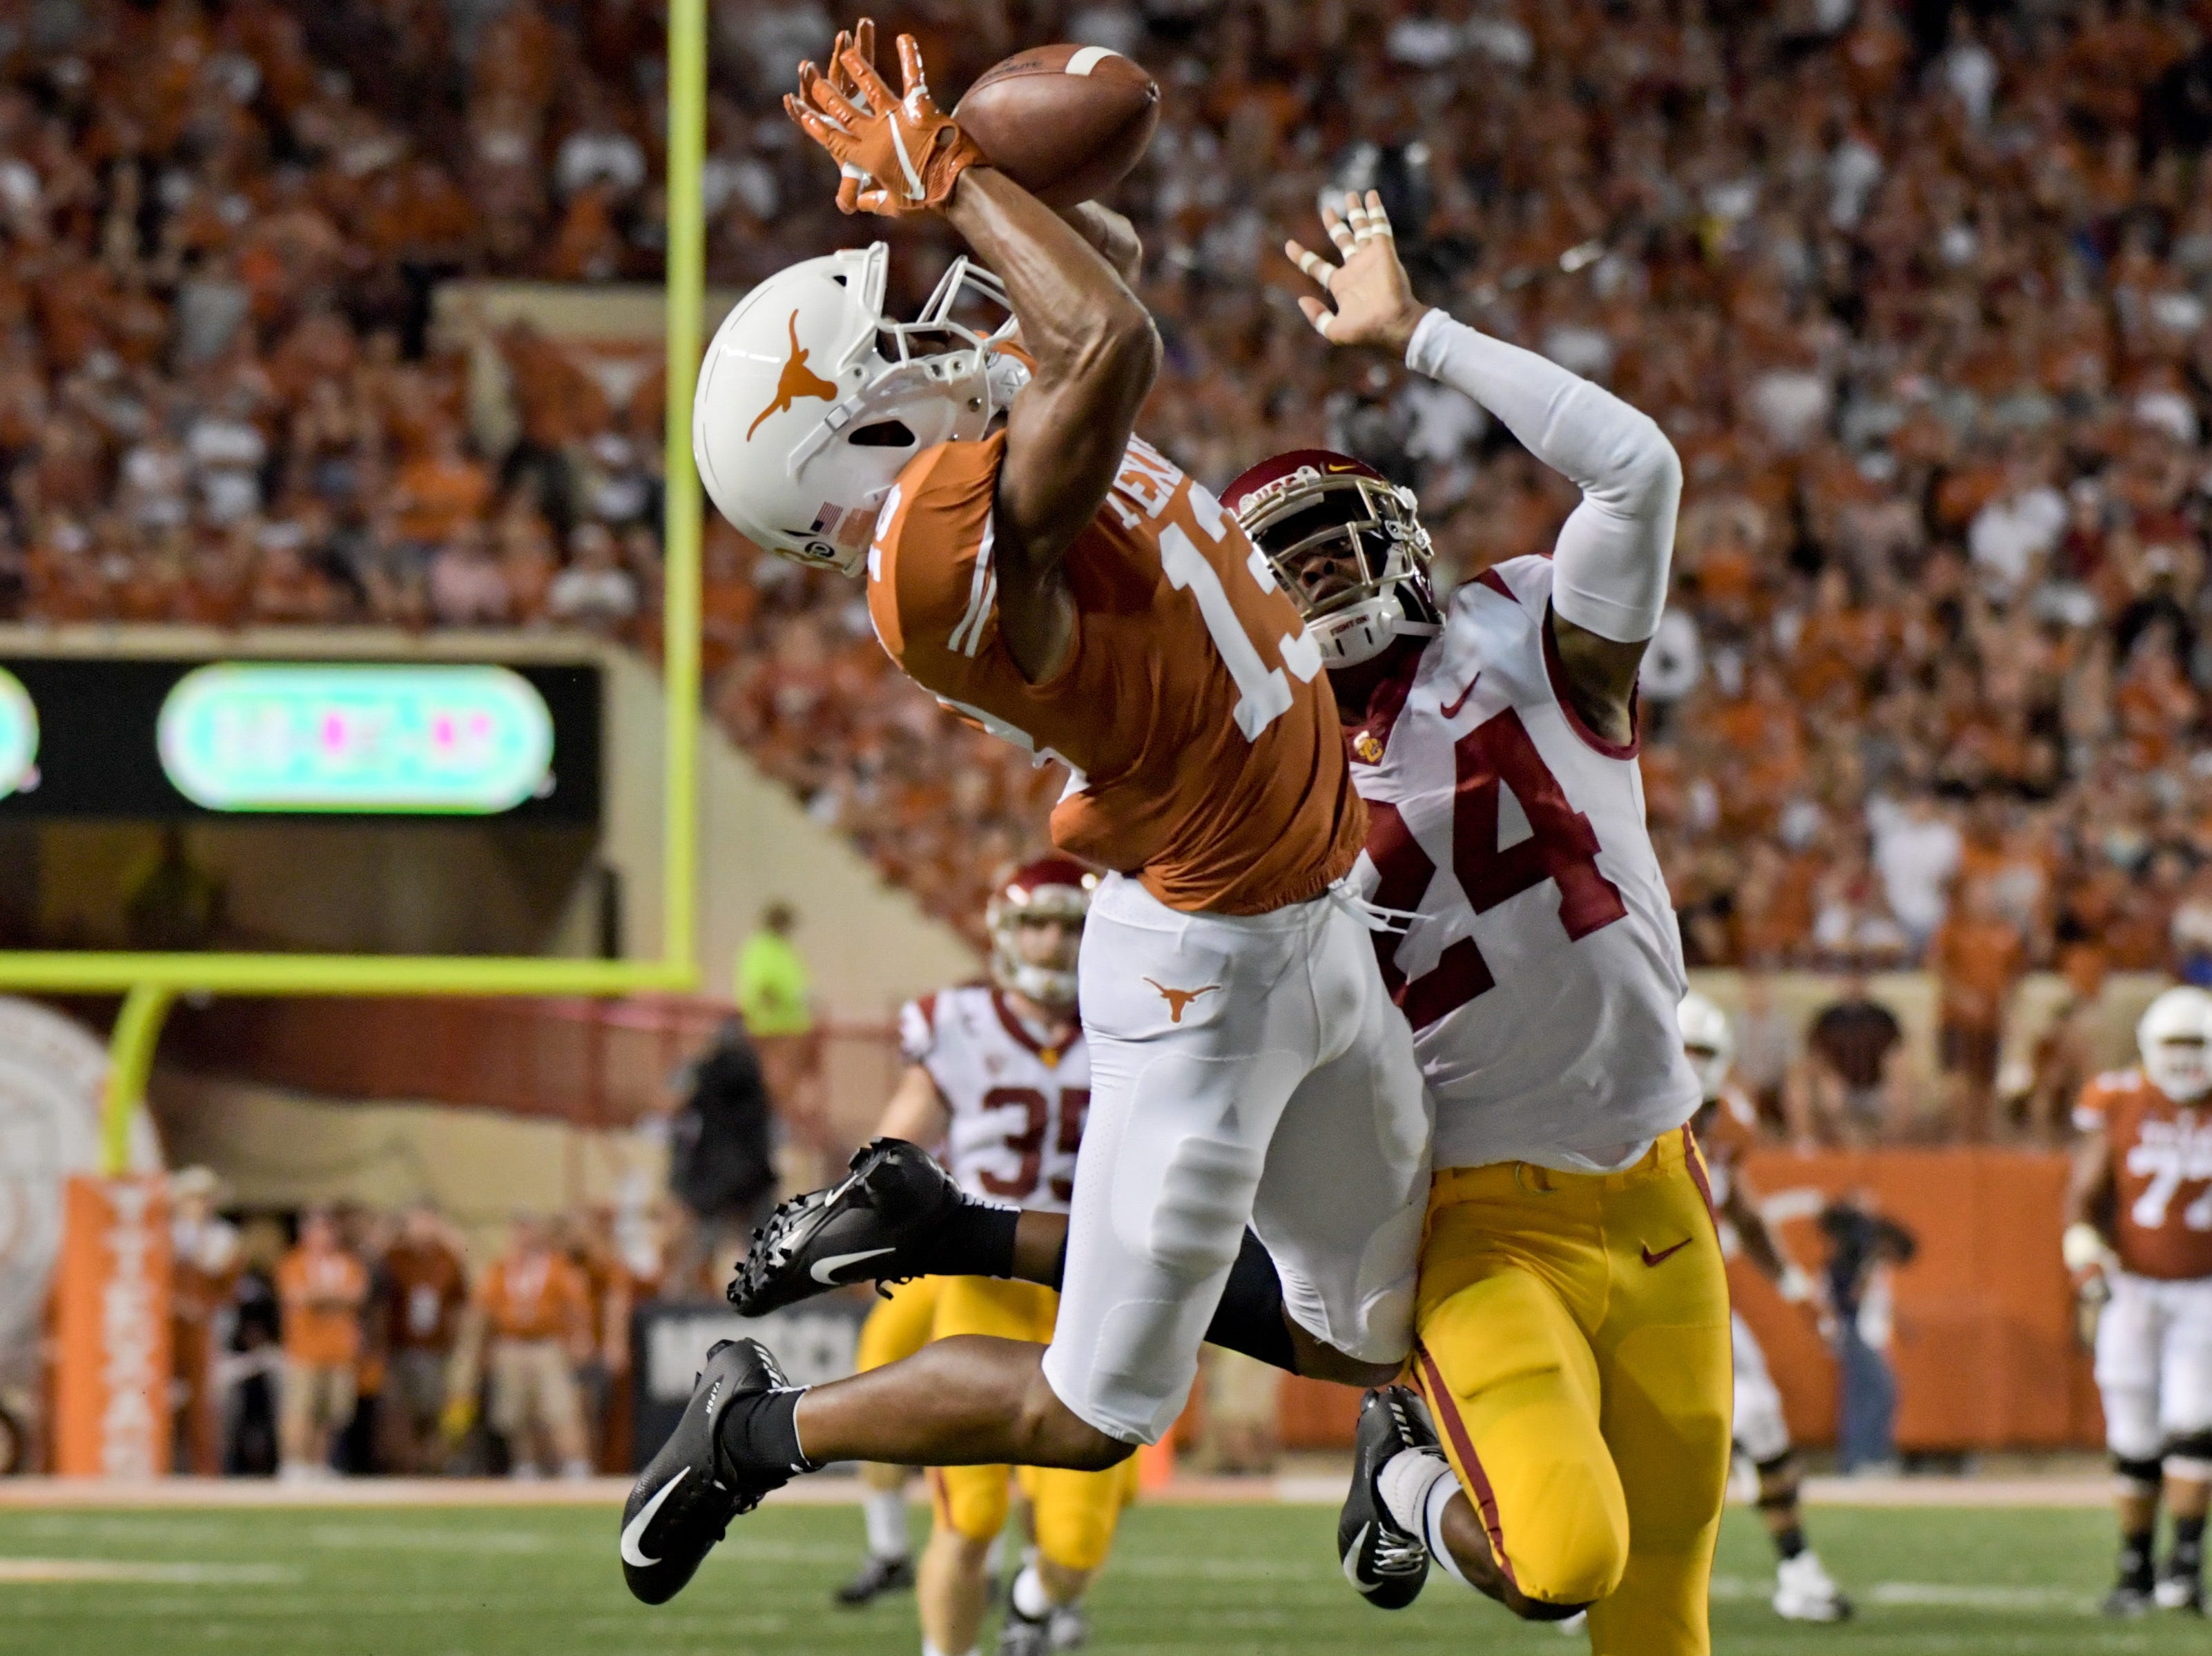 Southern California Trojans cornerback Isaiah Langley (24) breaks up a pass intended for Texas Longhorns wide receiver Jerrod Heard (13) during the first half at Darrell K Royal-Texas Memorial Stadium.